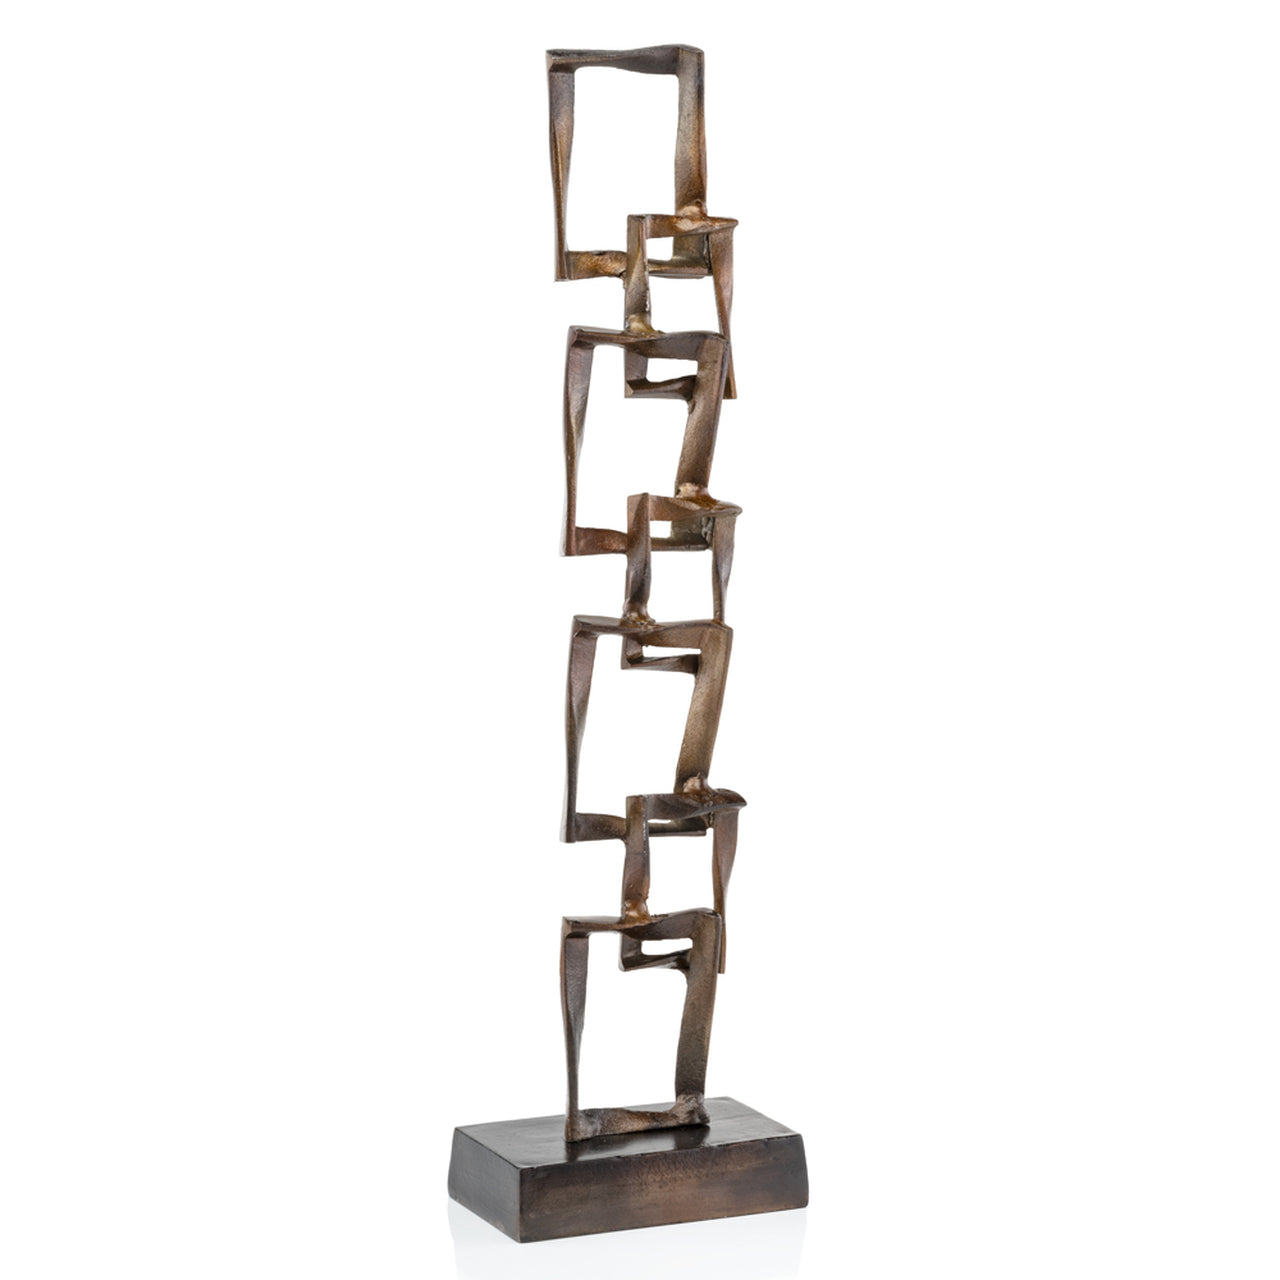 Cuadrado Tall Square Sculpture - Casa Muebles